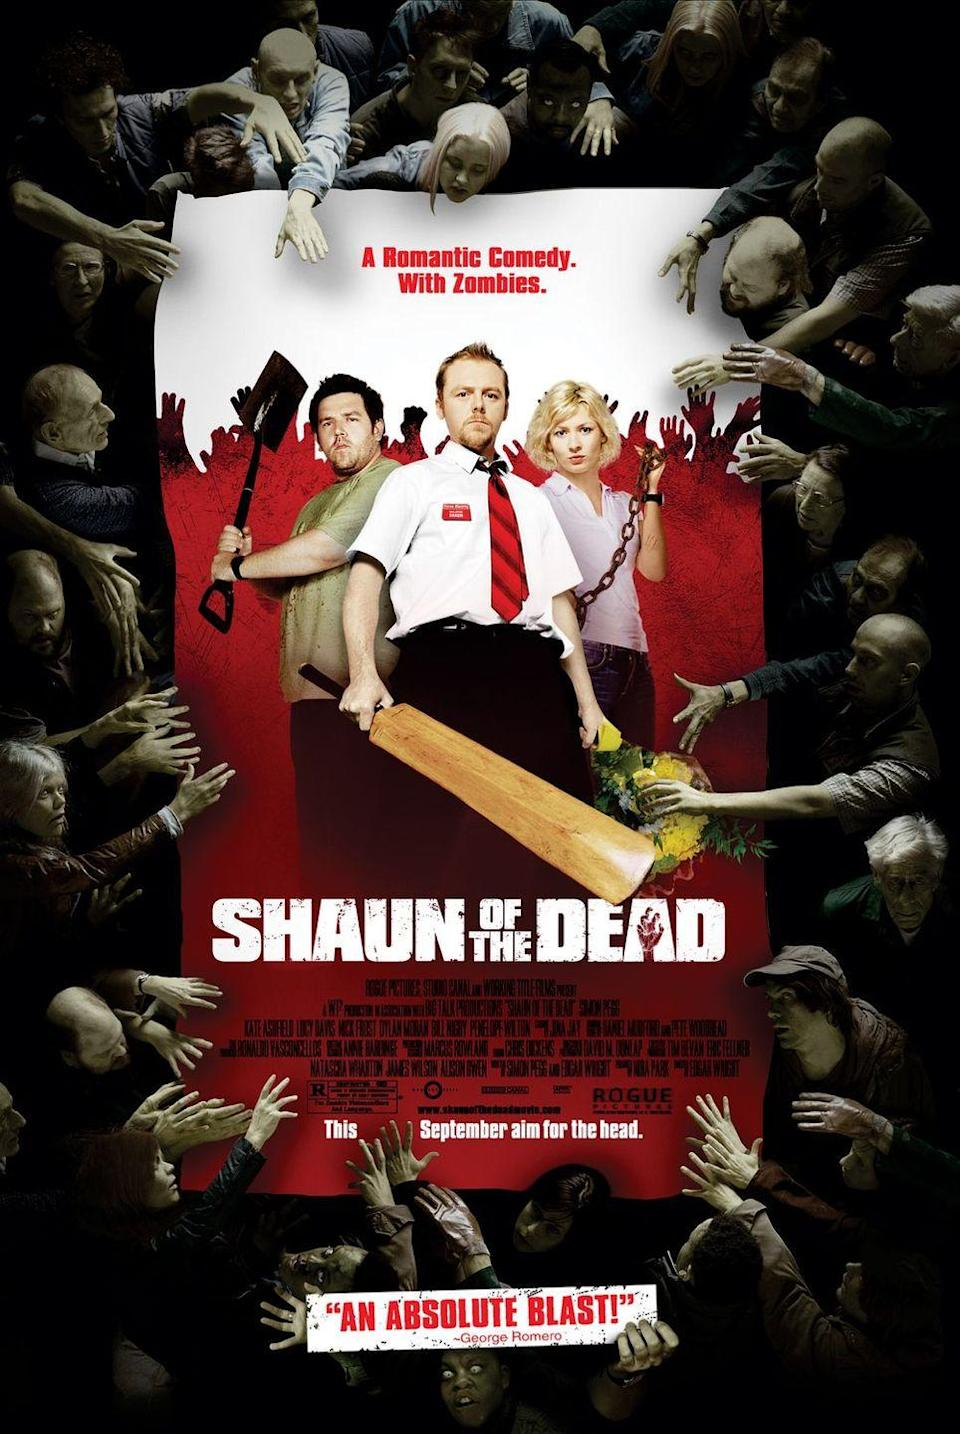 "<p>Meet your new favorite movie genre, the ""zom-rom-com""! Edgar Wright's witty horror-comedy flick — which follows the titular Shaun (Simon Pegg) during a zombie outbreak in London — combines the best laughs (and a touch of romance) together with some brilliant zombie gore. </p><p><a class=""link rapid-noclick-resp"" href=""https://www.amazon.com/Shaun-Dead-Simon-Pegg/dp/B0018OFN4U?tag=syn-yahoo-20&ascsubtag=%5Bartid%7C10055.g.33546030%5Bsrc%7Cyahoo-us"" rel=""nofollow noopener"" target=""_blank"" data-ylk=""slk:WATCH ON AMAZON"">WATCH ON AMAZON</a></p>"